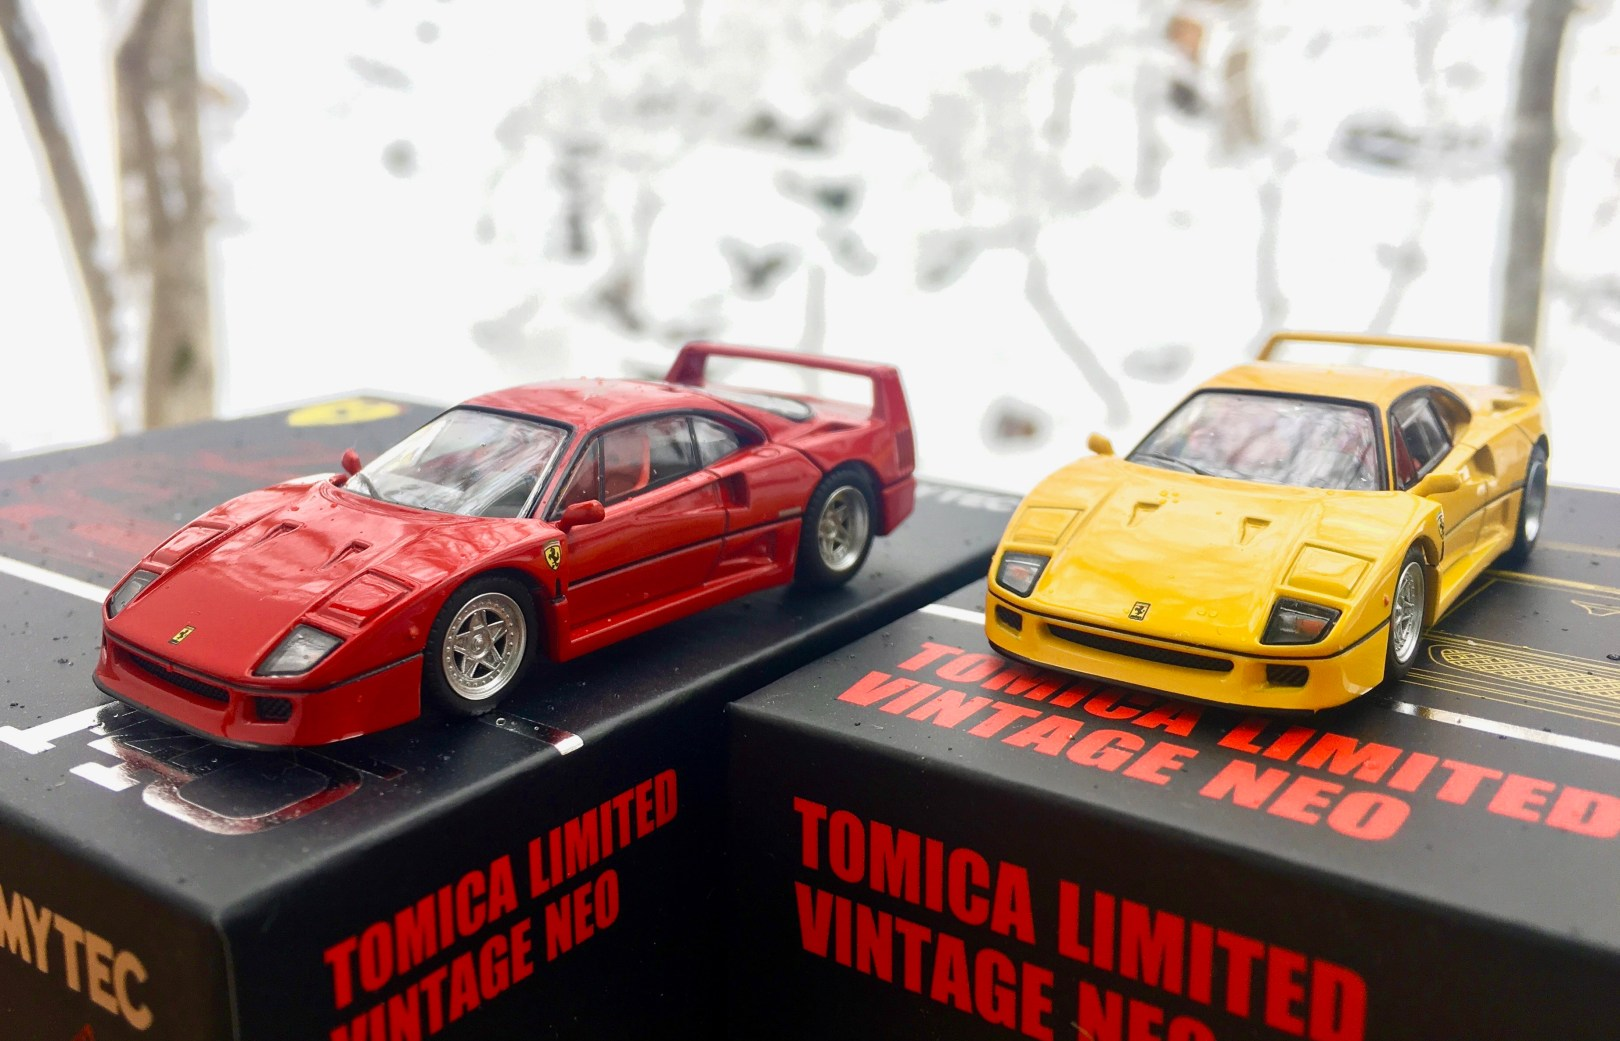 The New Tomica Limited Vintage Ferraris Hit Japan Booster This Morning Here Is The Link And The Details Thelamleygroup